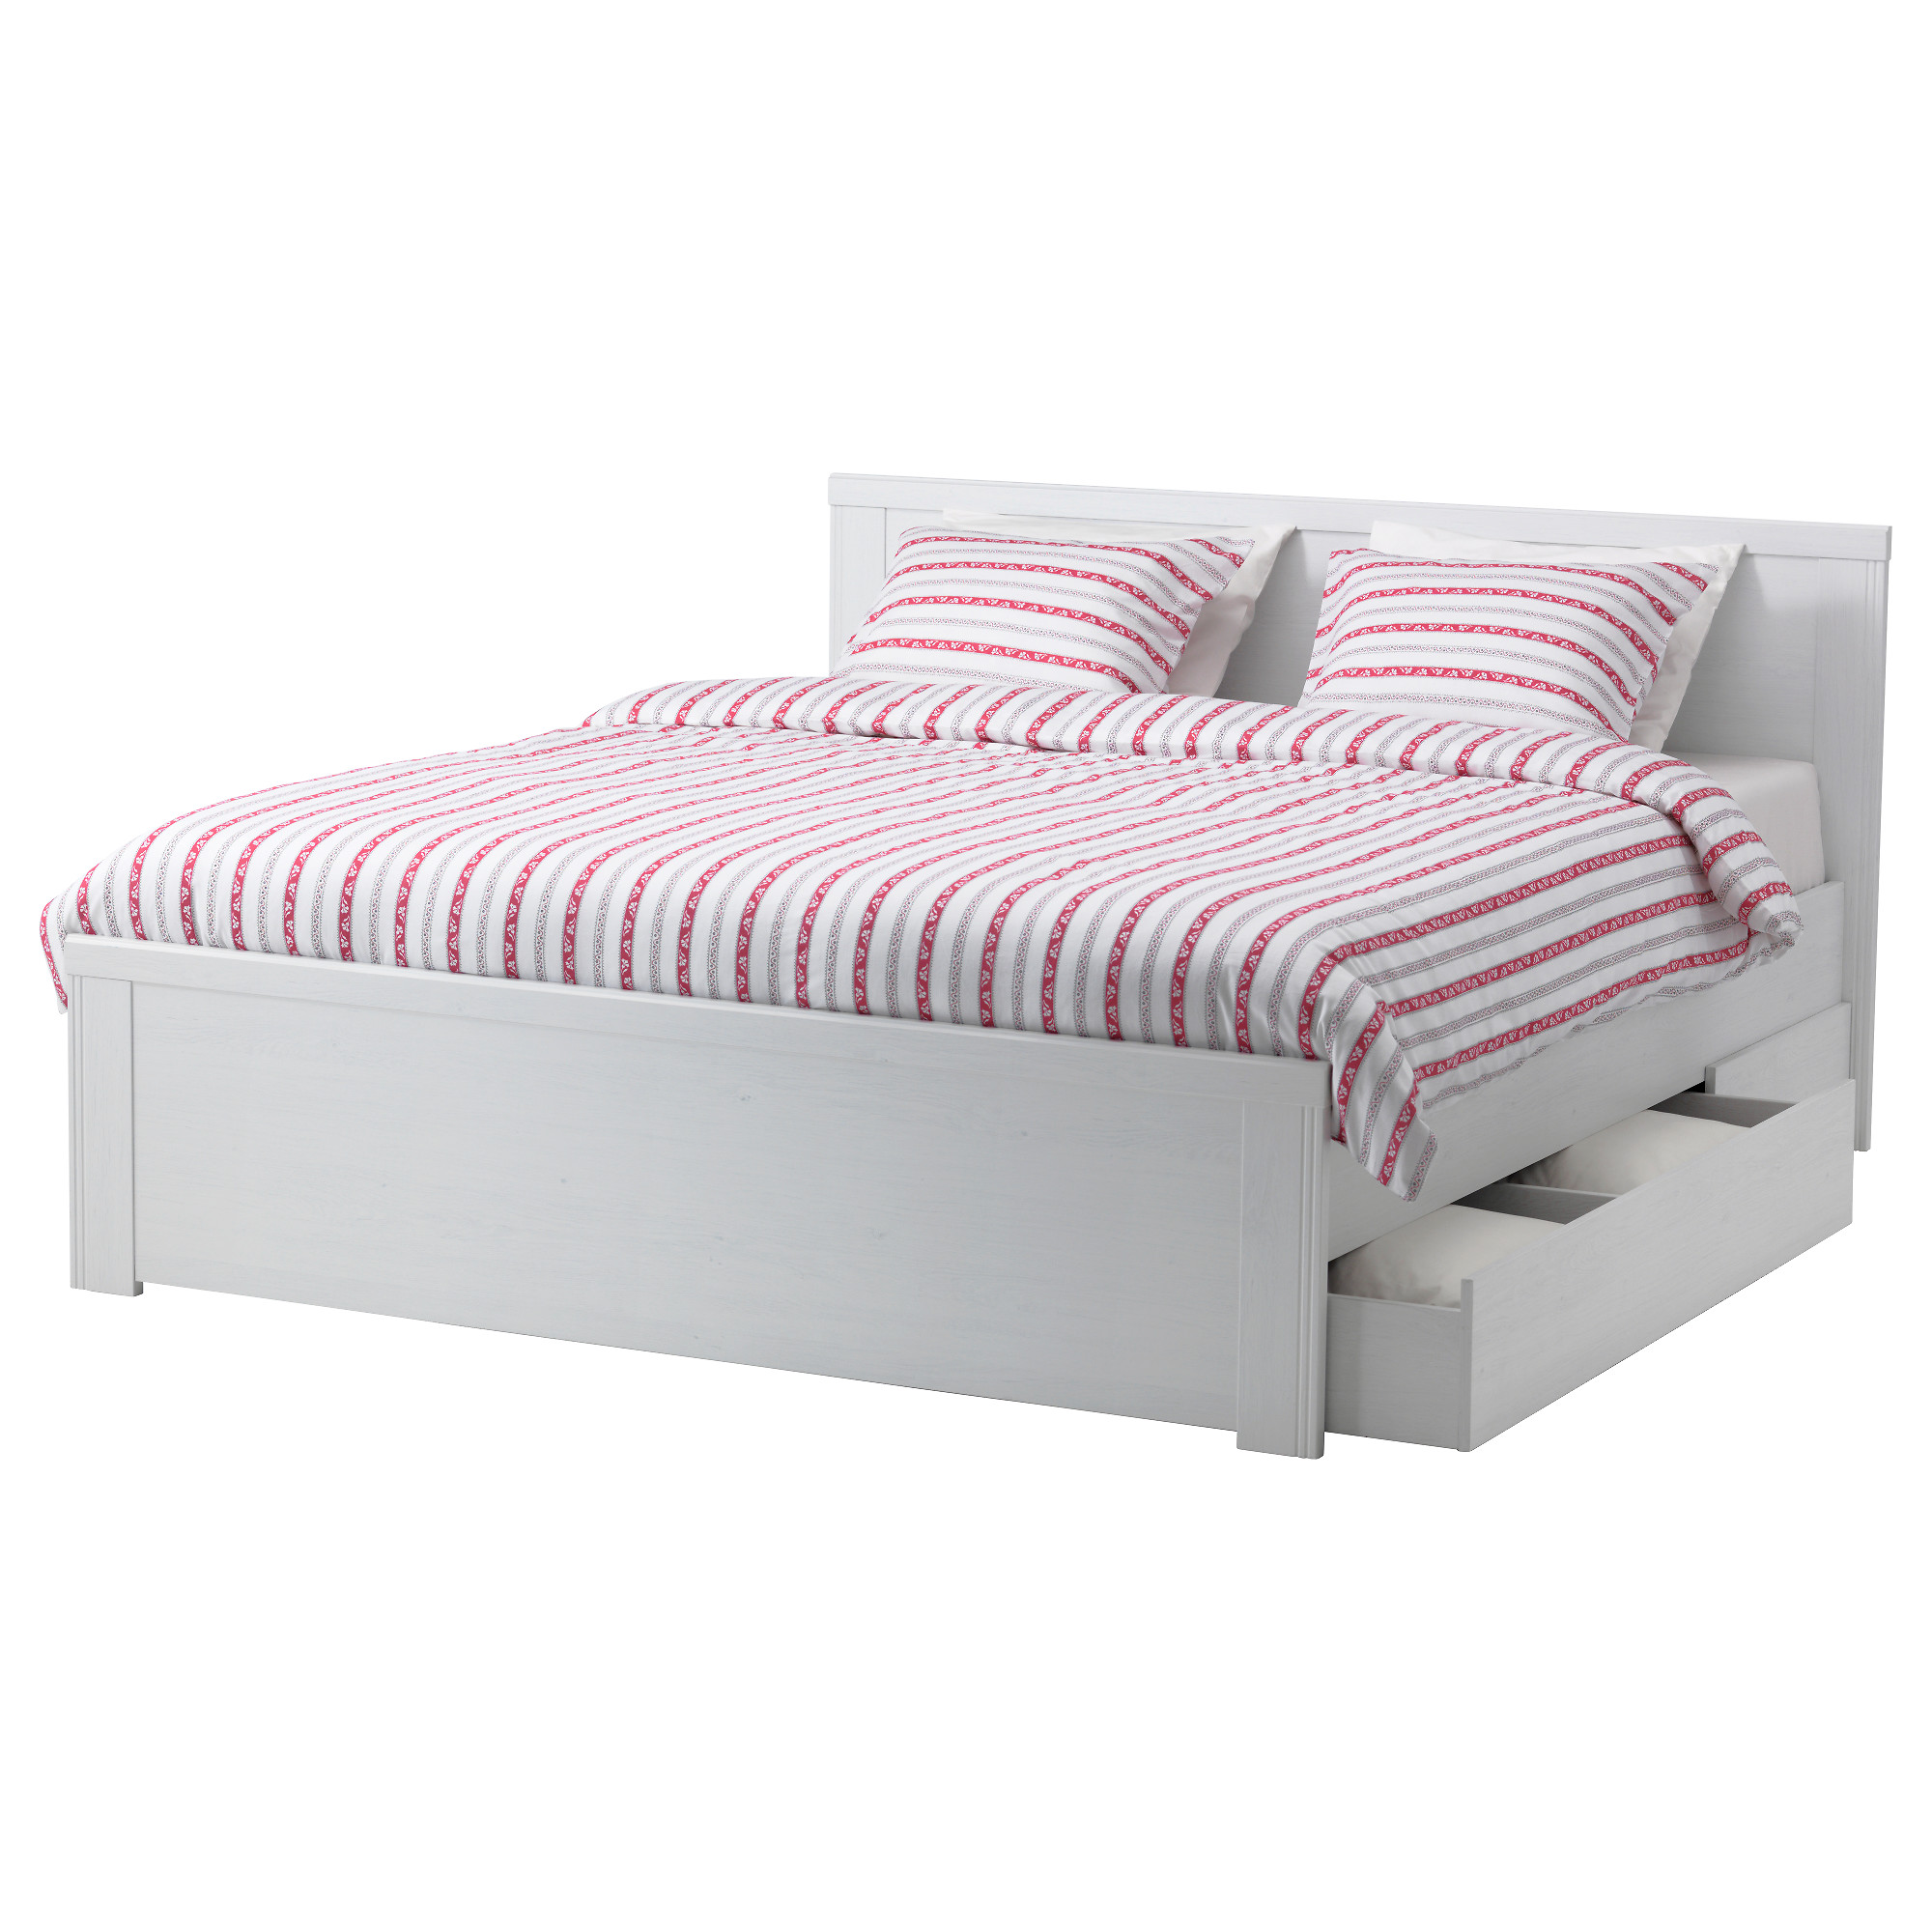 Ikea bed frame with drawers homesfeed for Ikea mattress frame